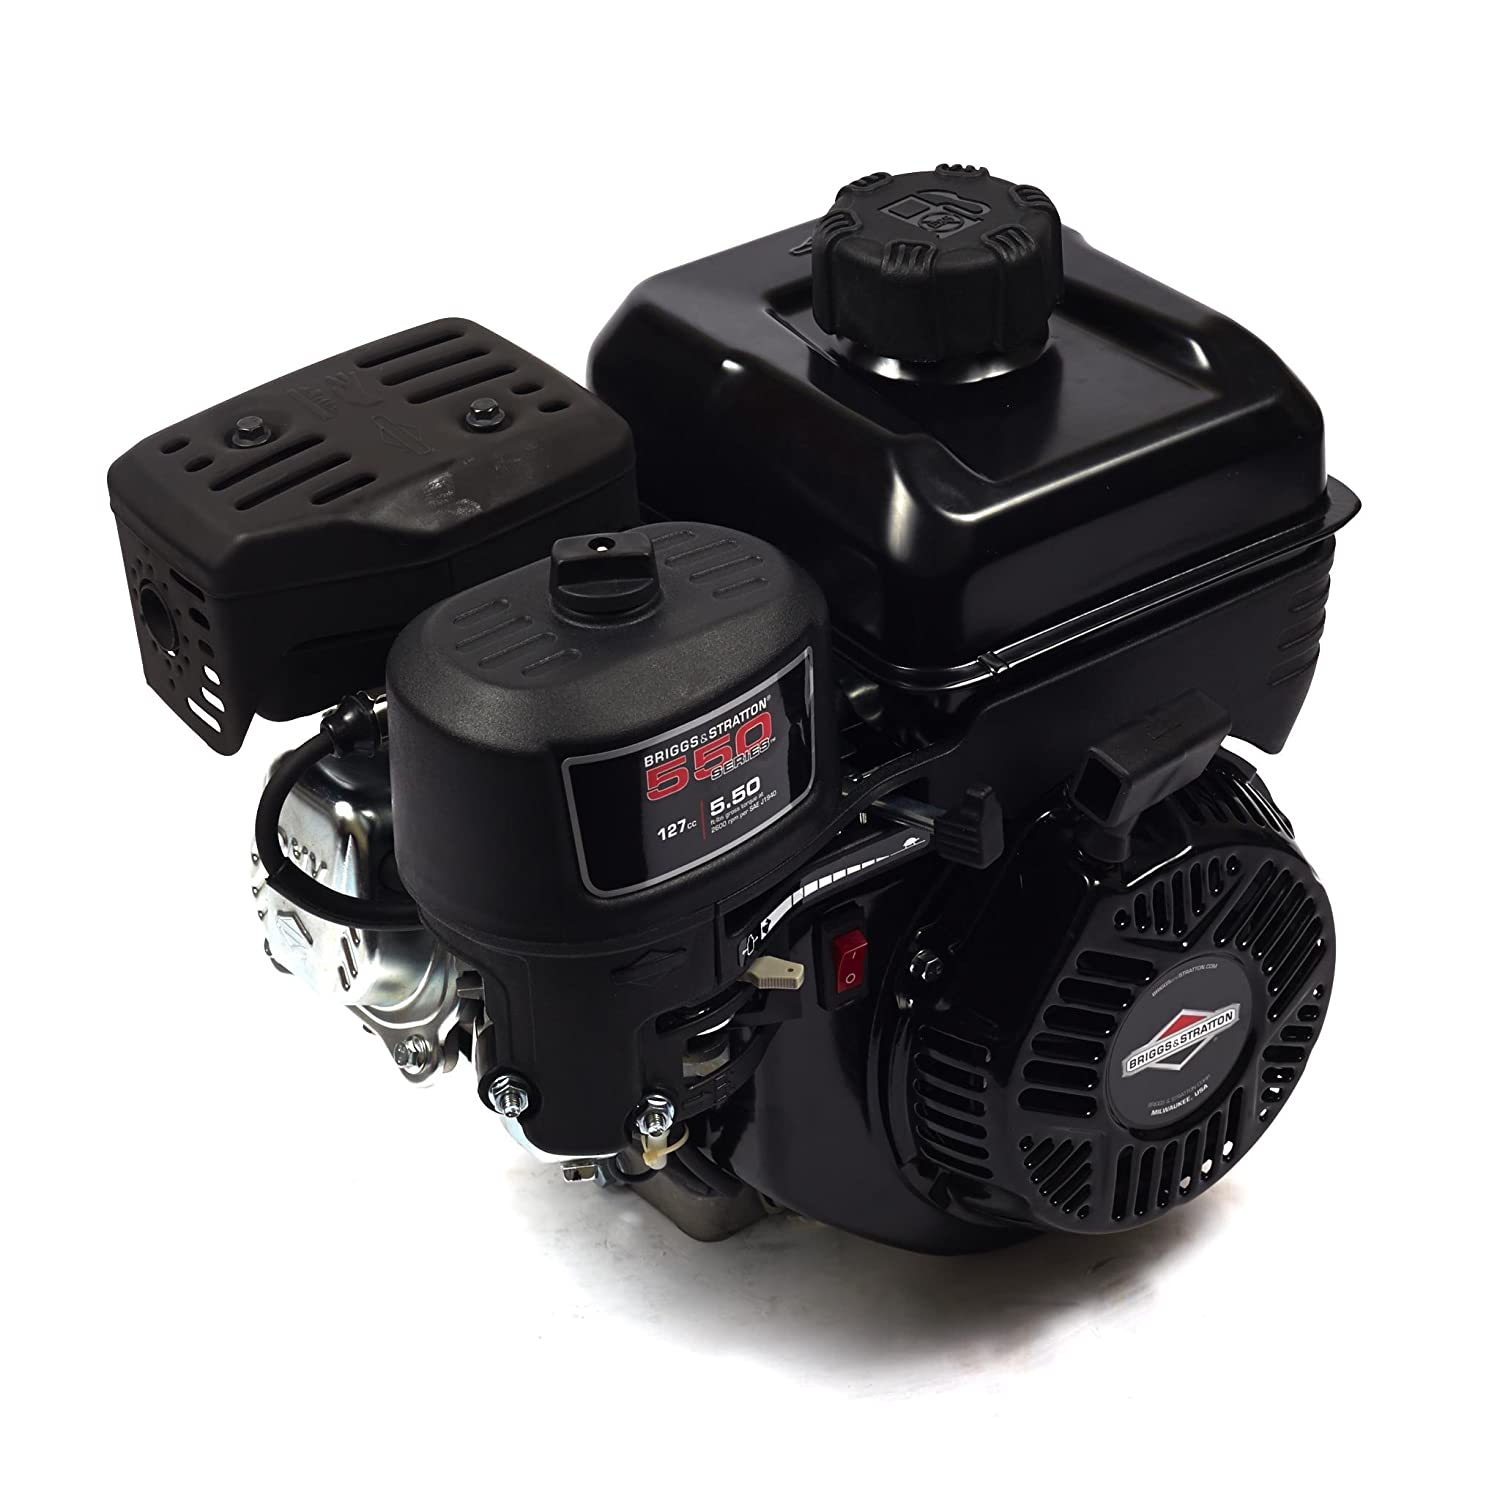 Briggs and Stratton 83152-1049-F1 550 Series 127cc Engine with 6:1 Gear Reduction